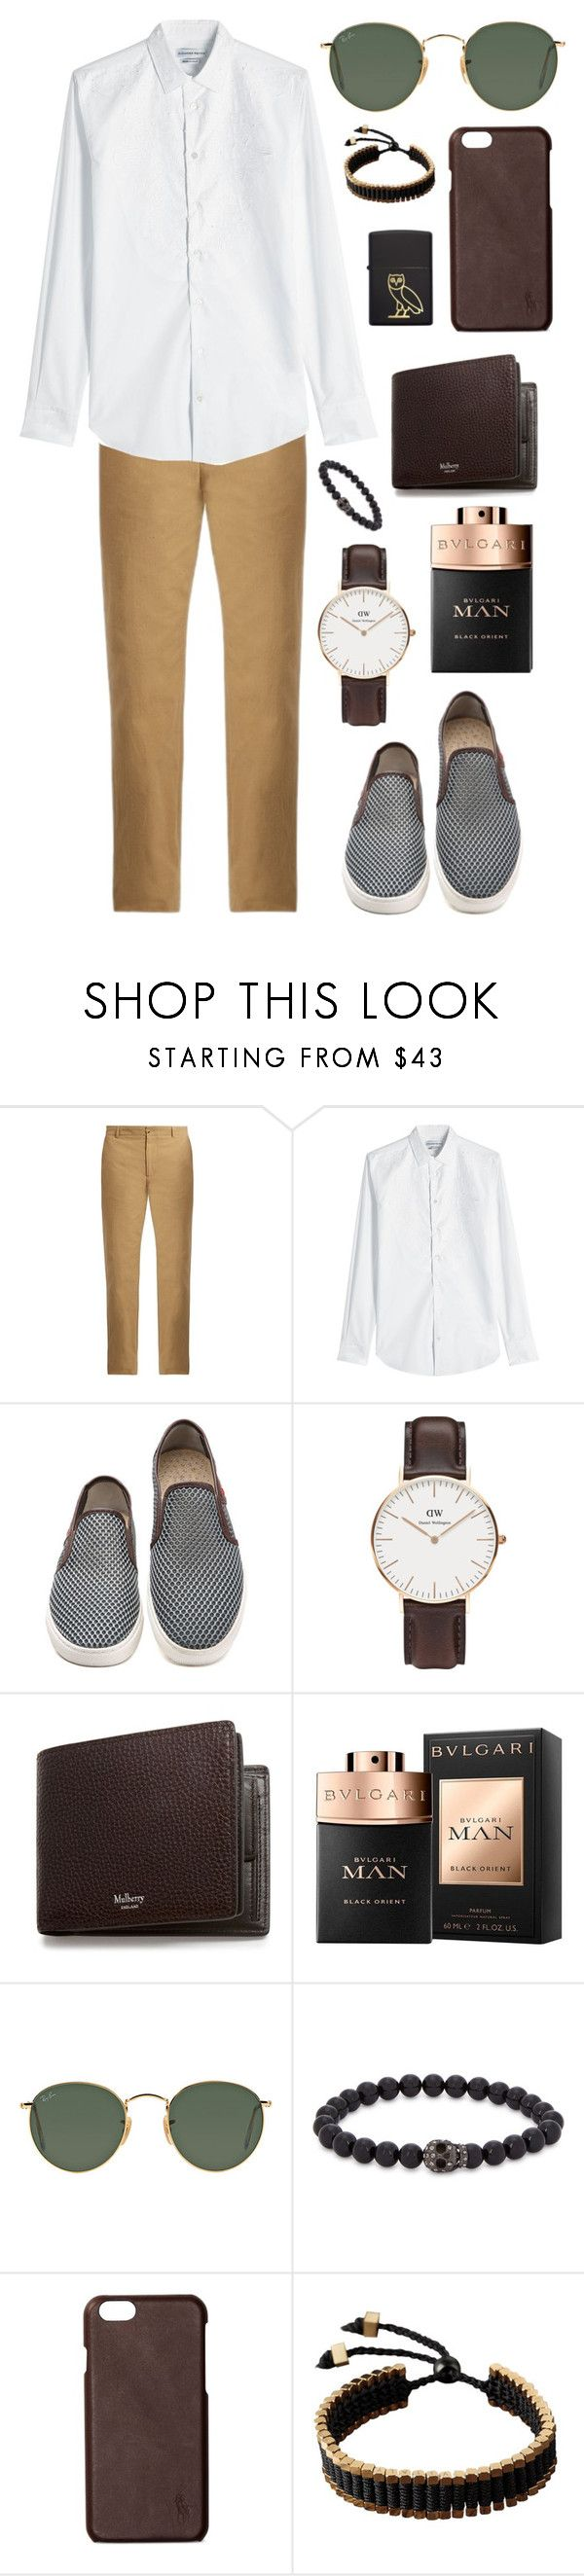 """""""Untitled #724"""" by clary94 ❤ liked on Polyvore featuring De Bonne Facture, Alexander McQueen, Daniel Wellington, Mulberry, Bulgari, Ray-Ban, Simon Carter, Polo Ralph Lauren, Vitaly and Zippo"""